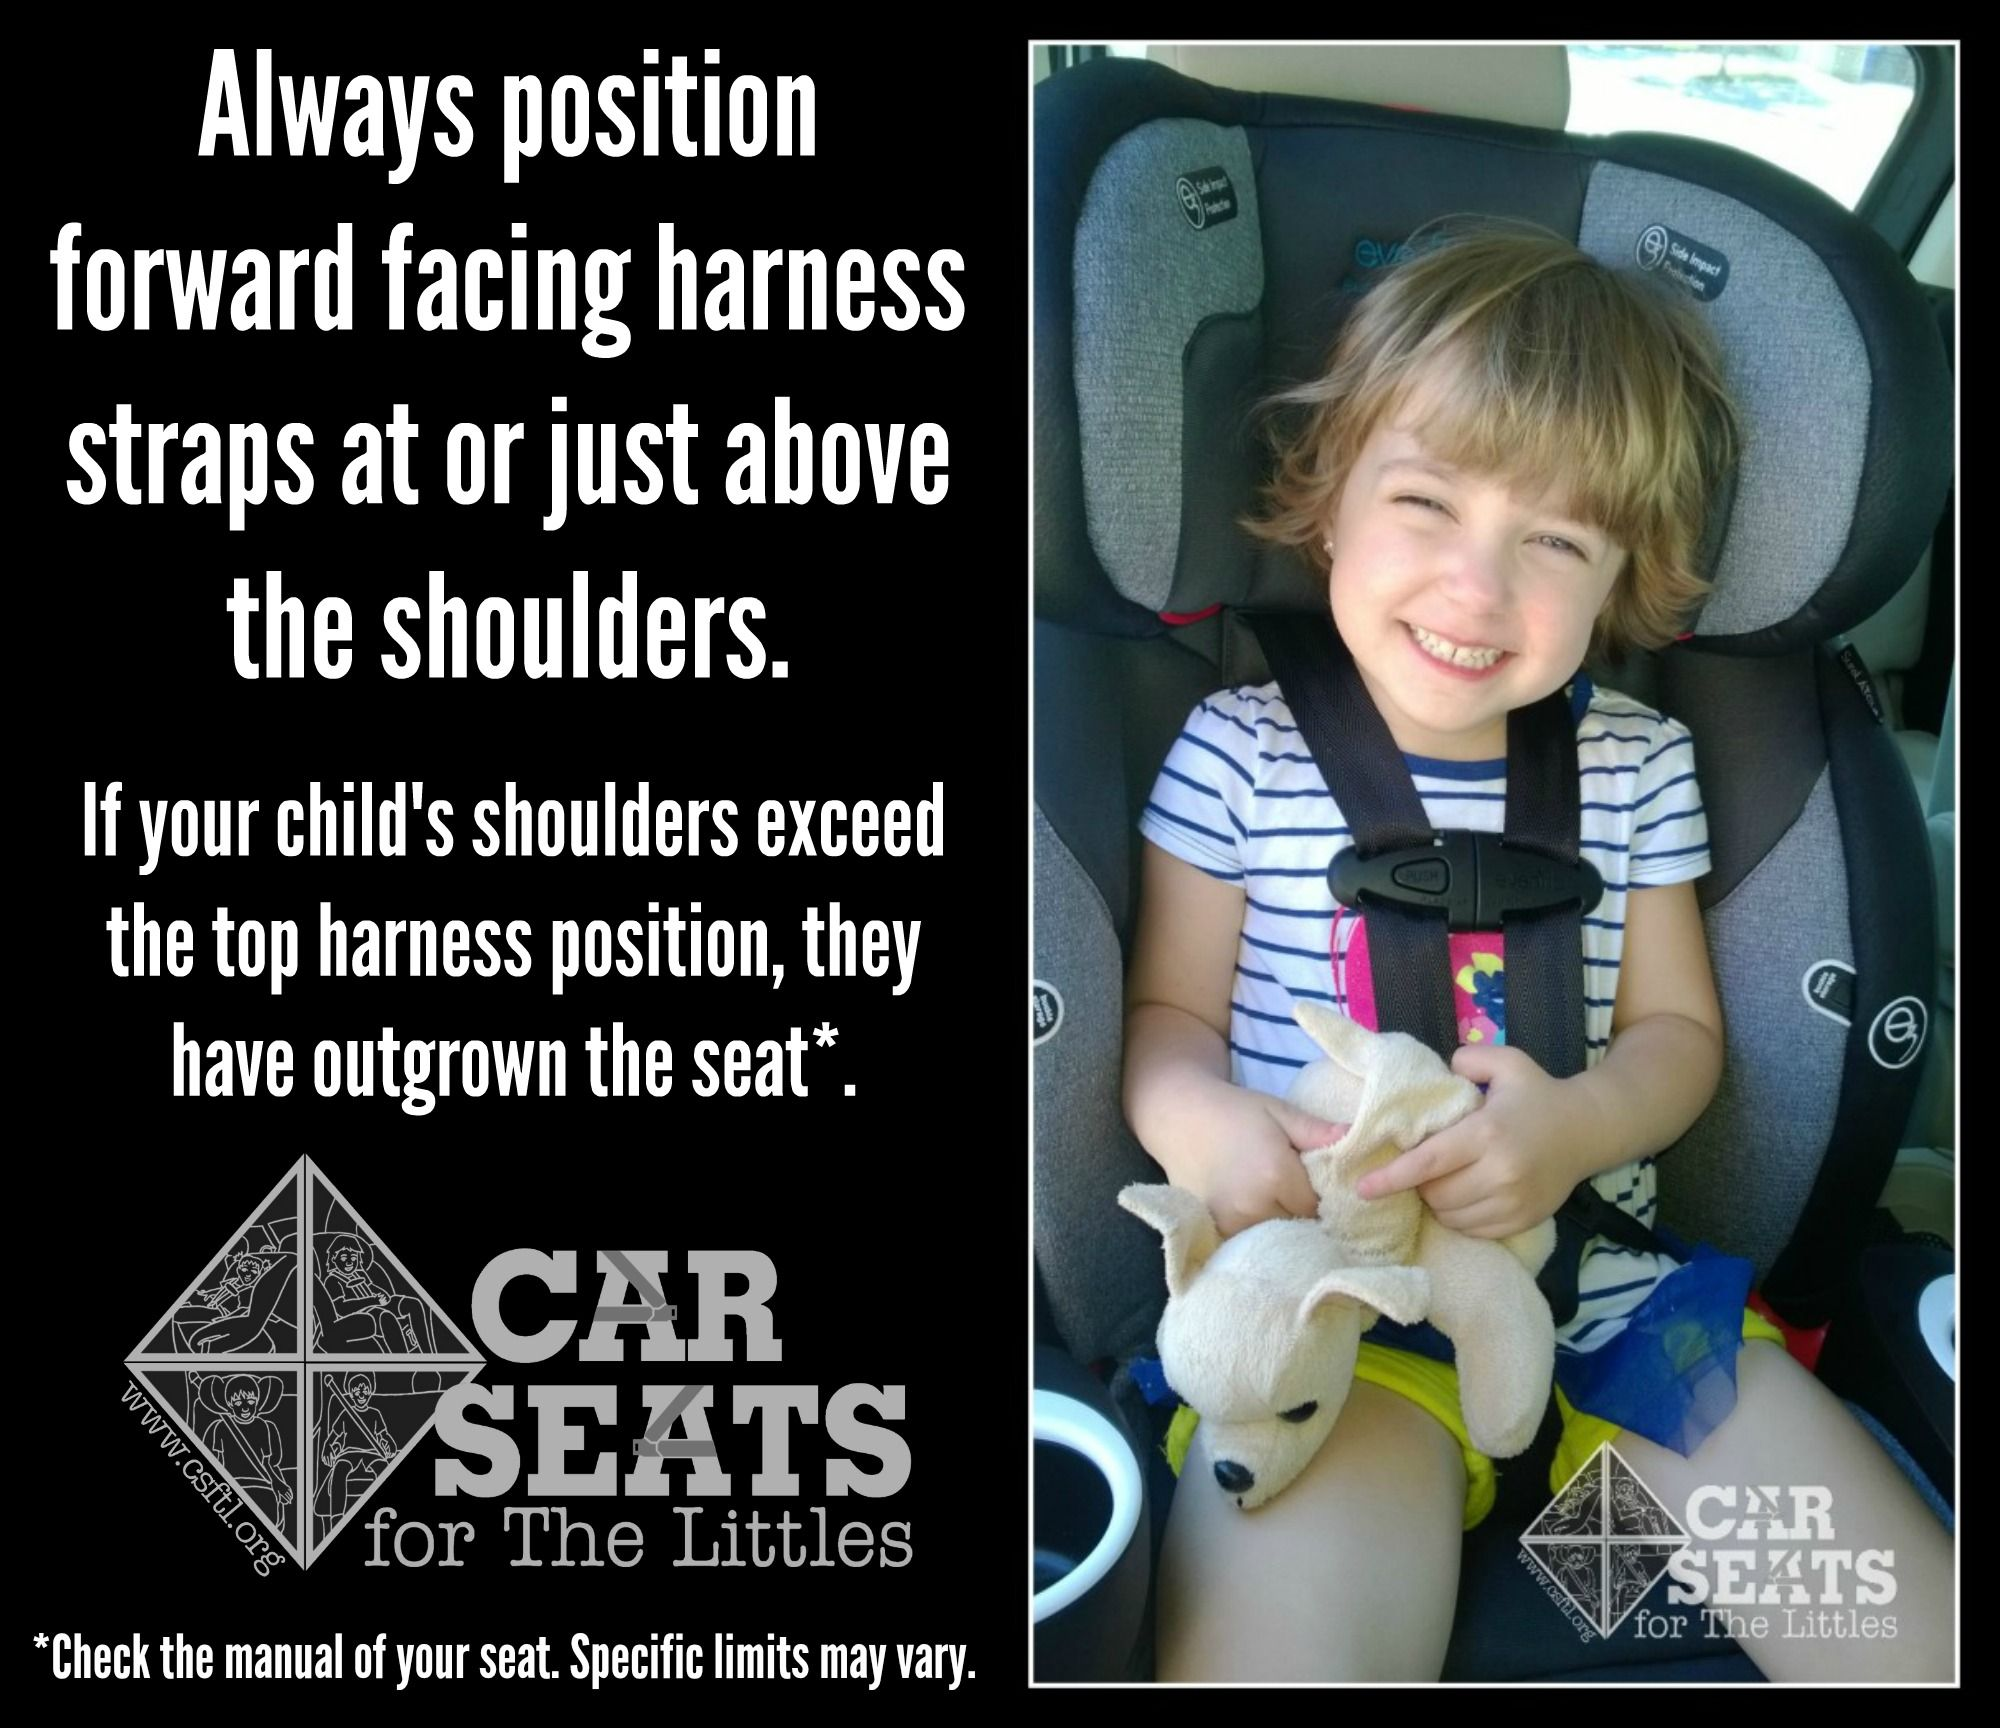 ac15200ba61 Forward facing car seat straps should be positioned at or above the  shoulders! www.csftl.org